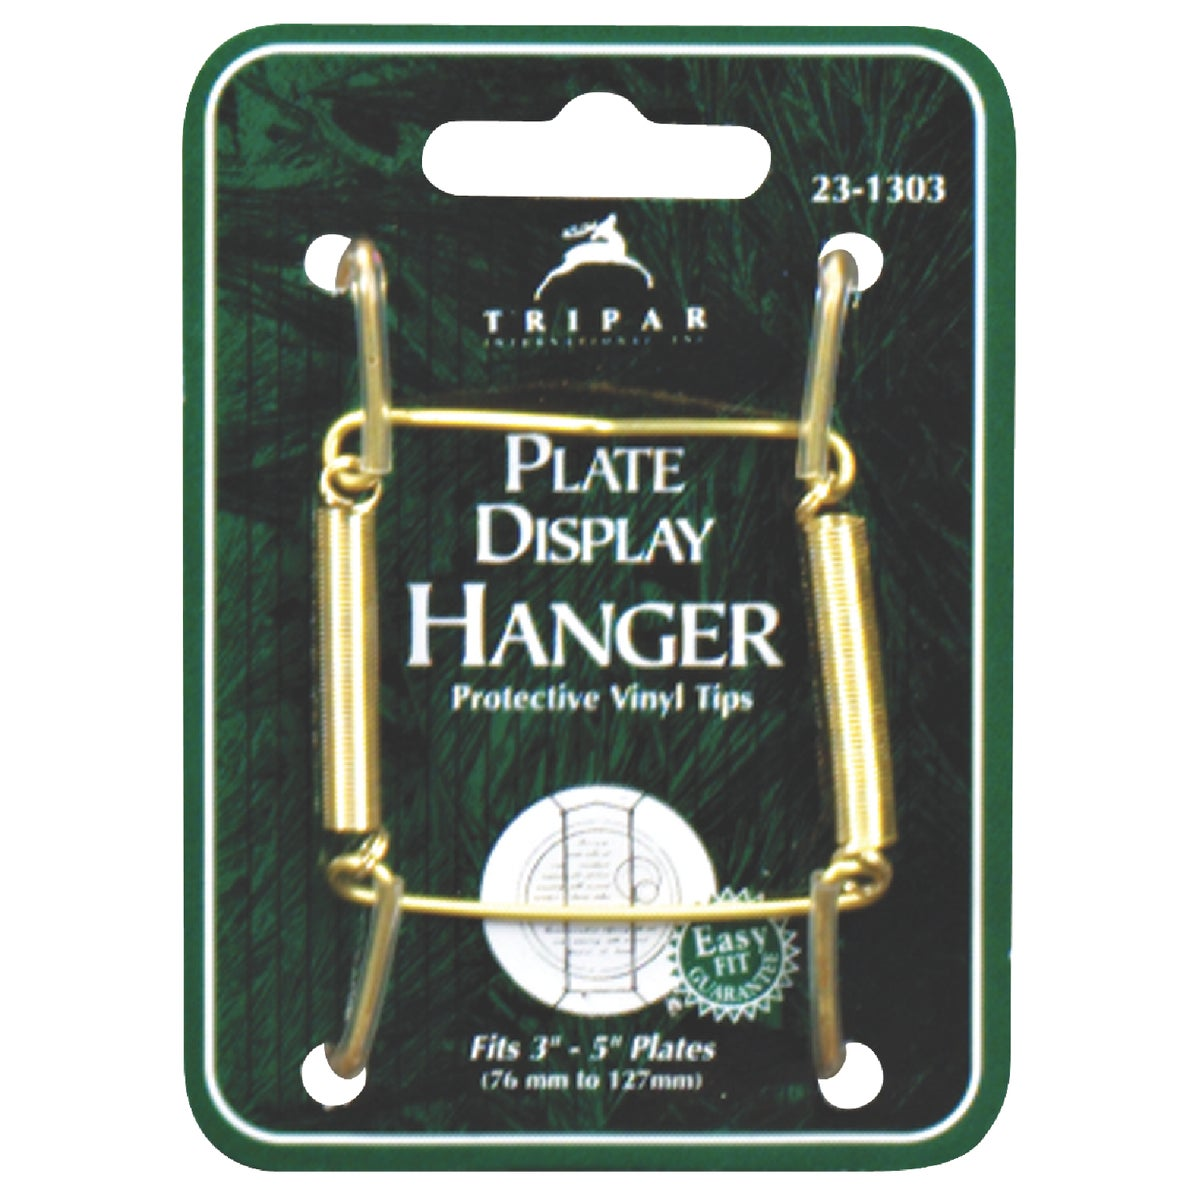 3-5 BRASS WIRE HANGER - 23-1303 by Tripar Intl